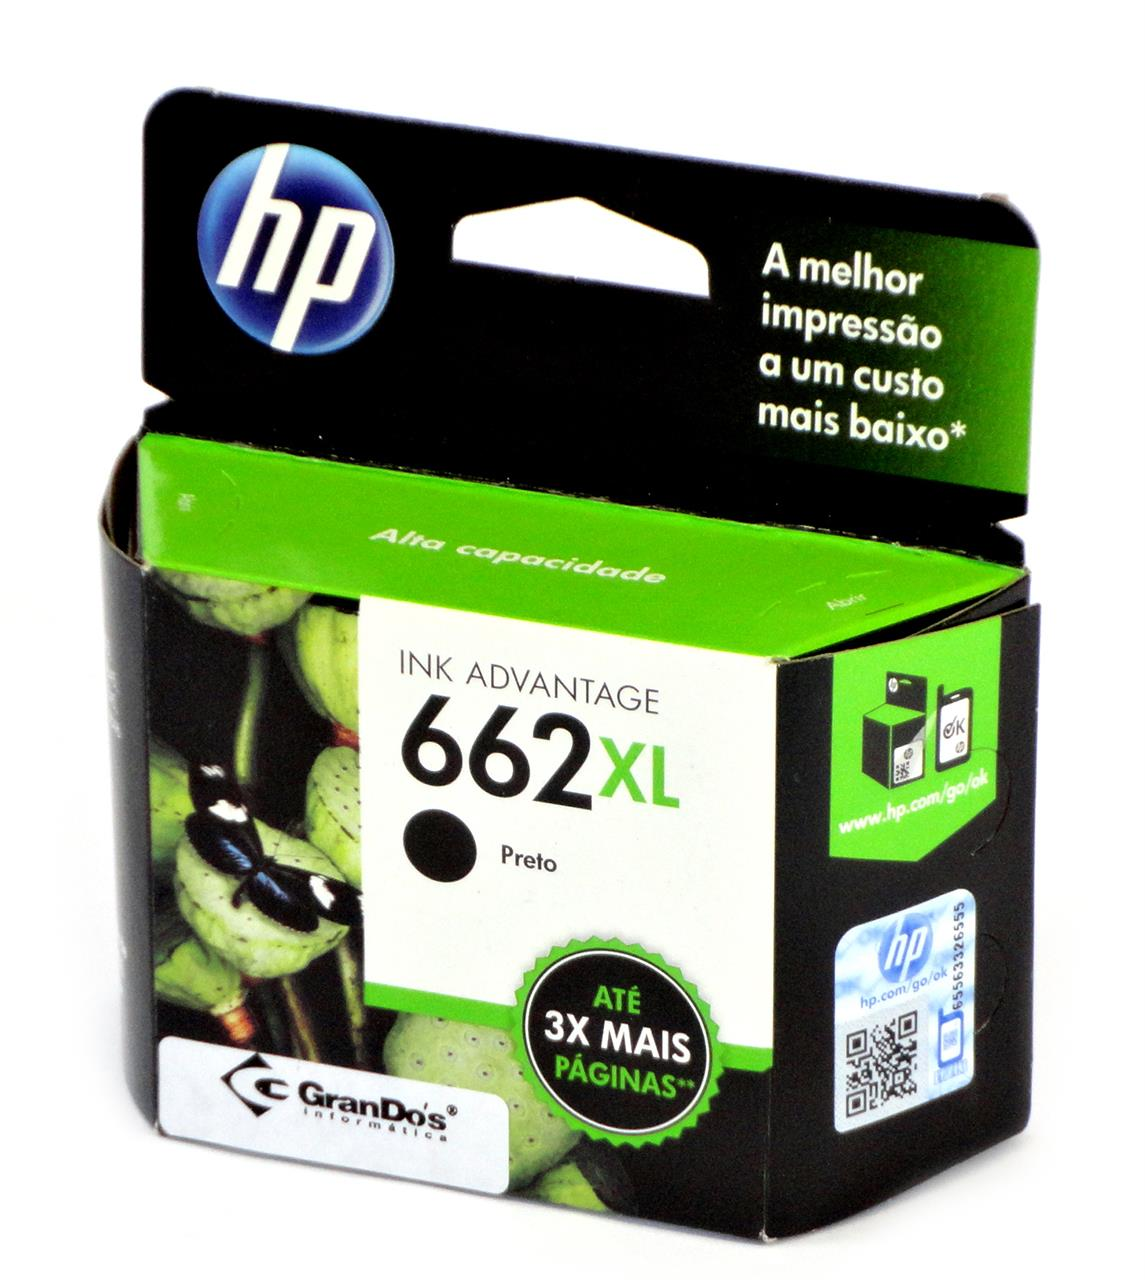 Cartucho Original HP 662XL Preto CZ105AB